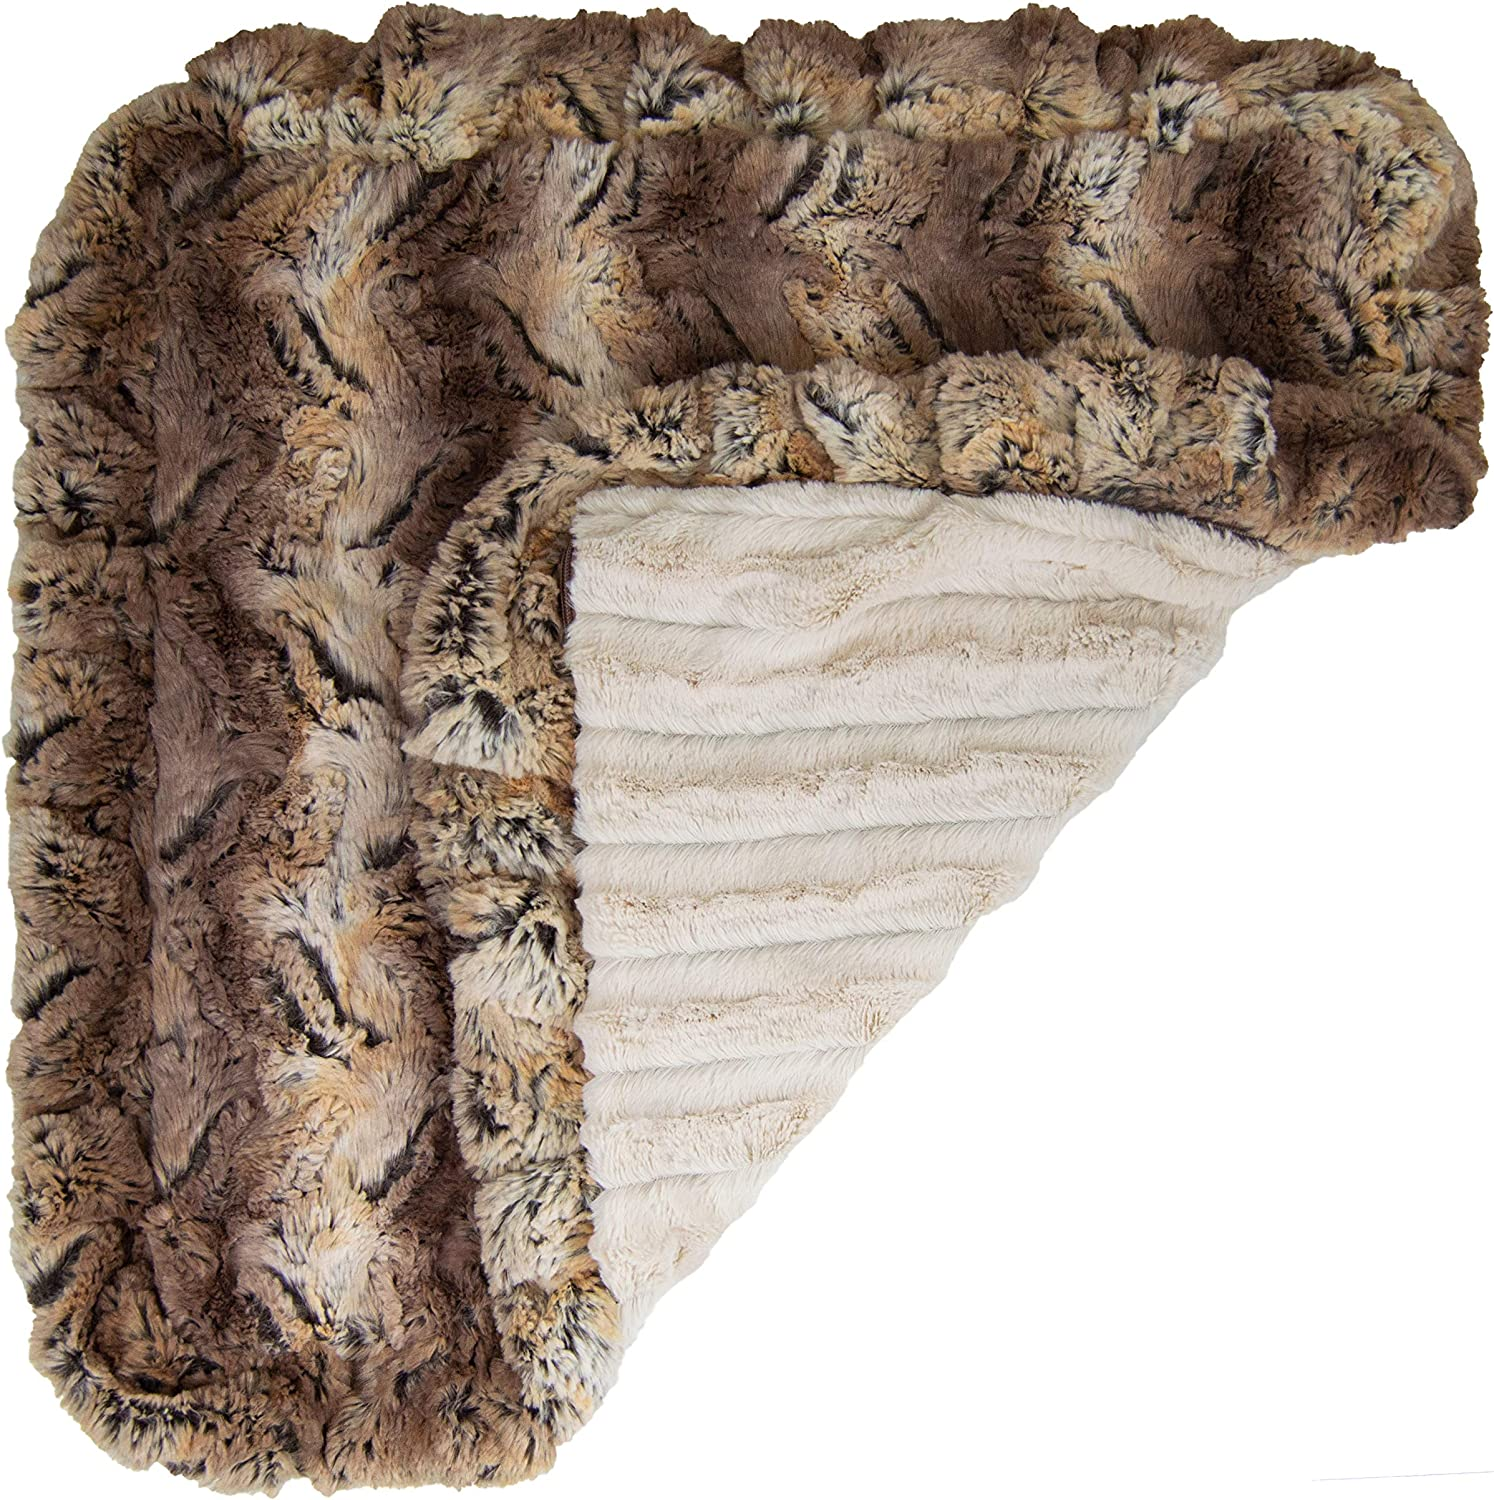 Bessie and Barnie Natural Beauty// Simba Luxury Ultra Plush Faux Fur Pet Cat Multiple Sizes Puppy Super Soft Reversible Blanket Dog